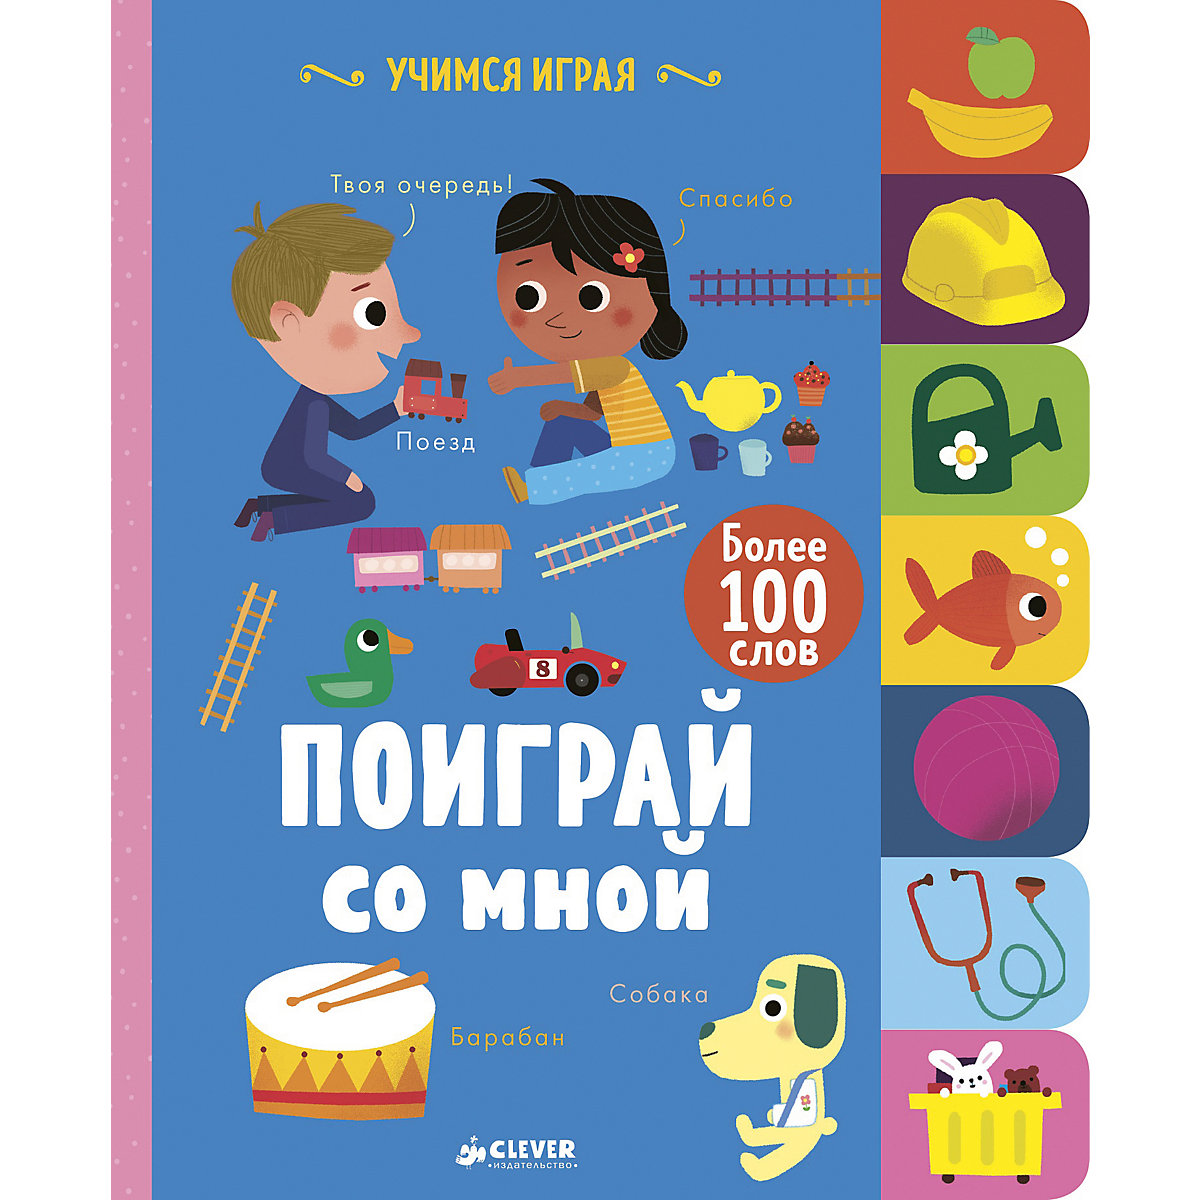 Books CLEVER 8303210 Children Education Encyclopedia Alphabet Dictionary Book For Baby MTpromo